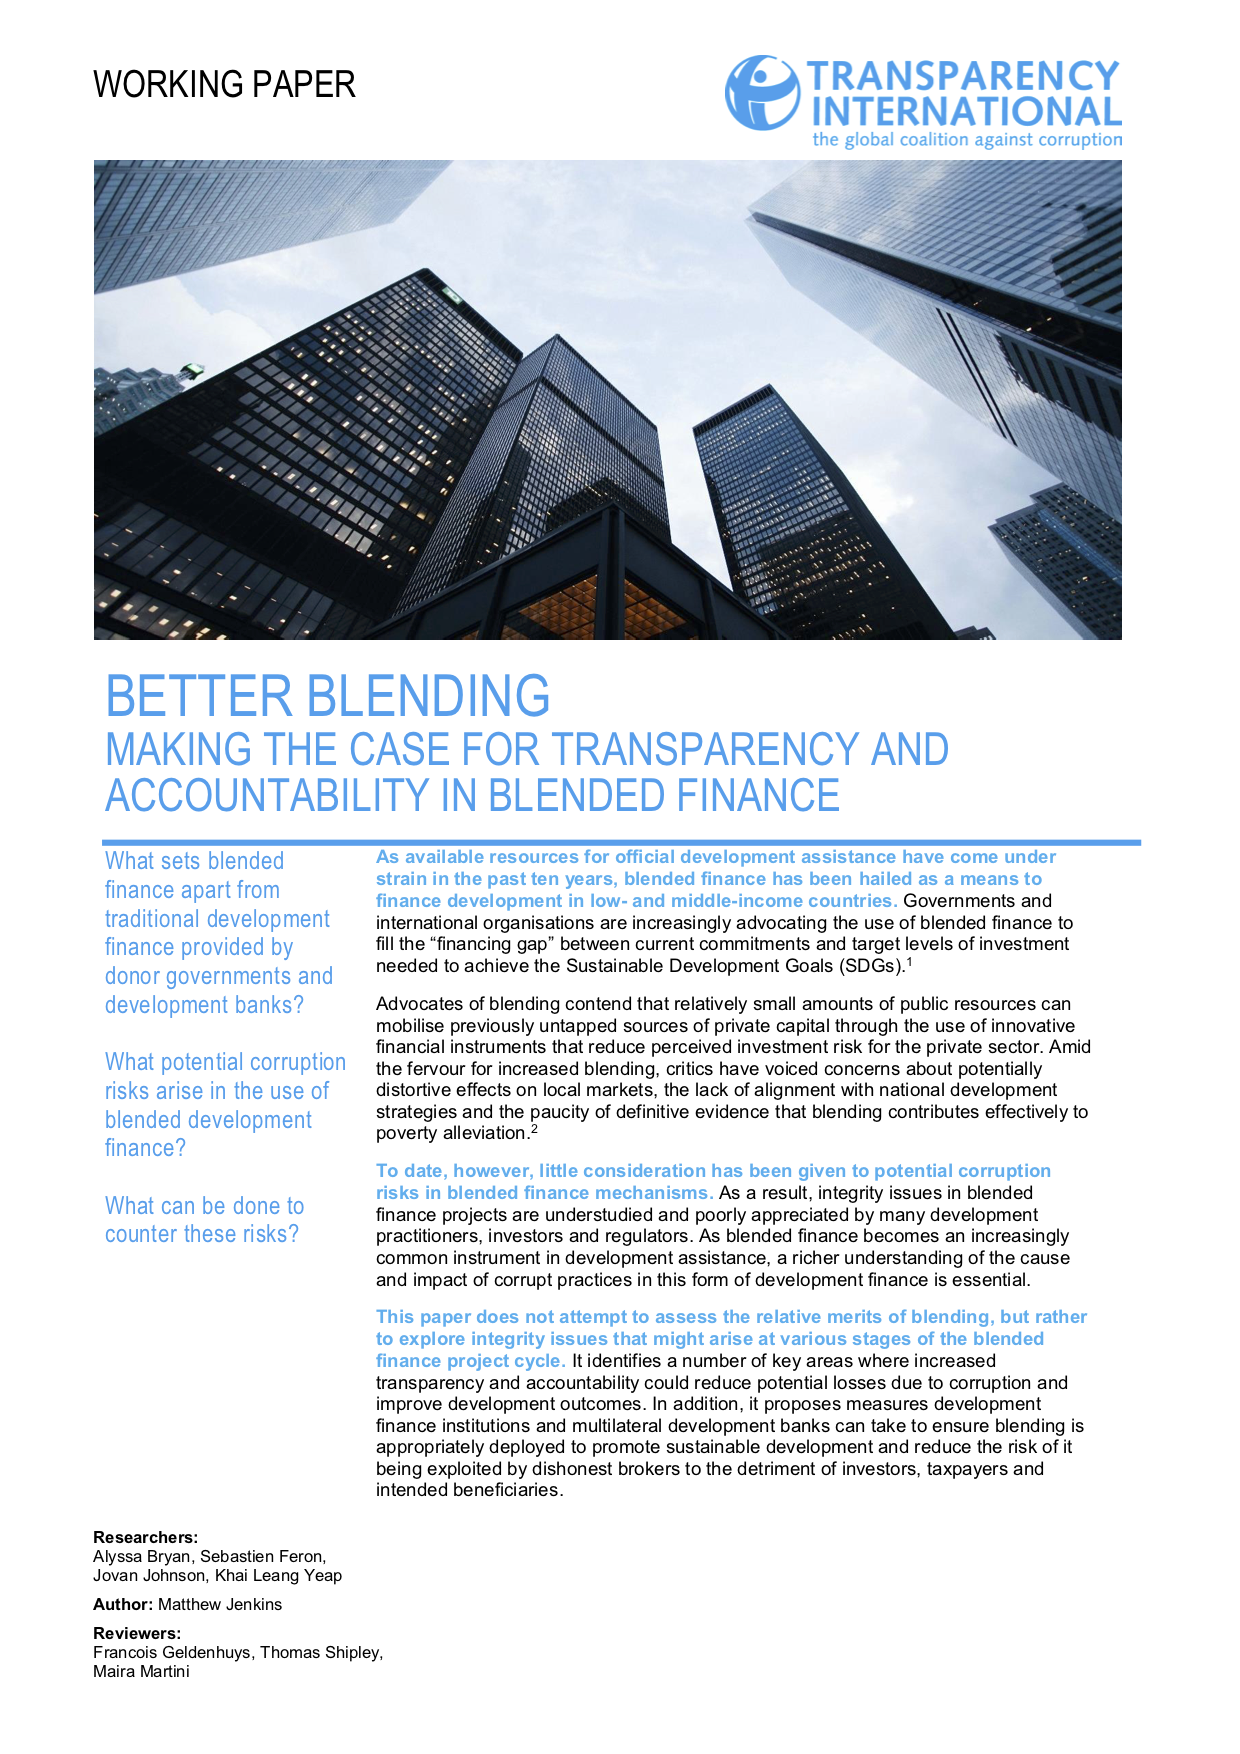 Better Blending: Making the Case for Transparency and Accountability in Blended Finance